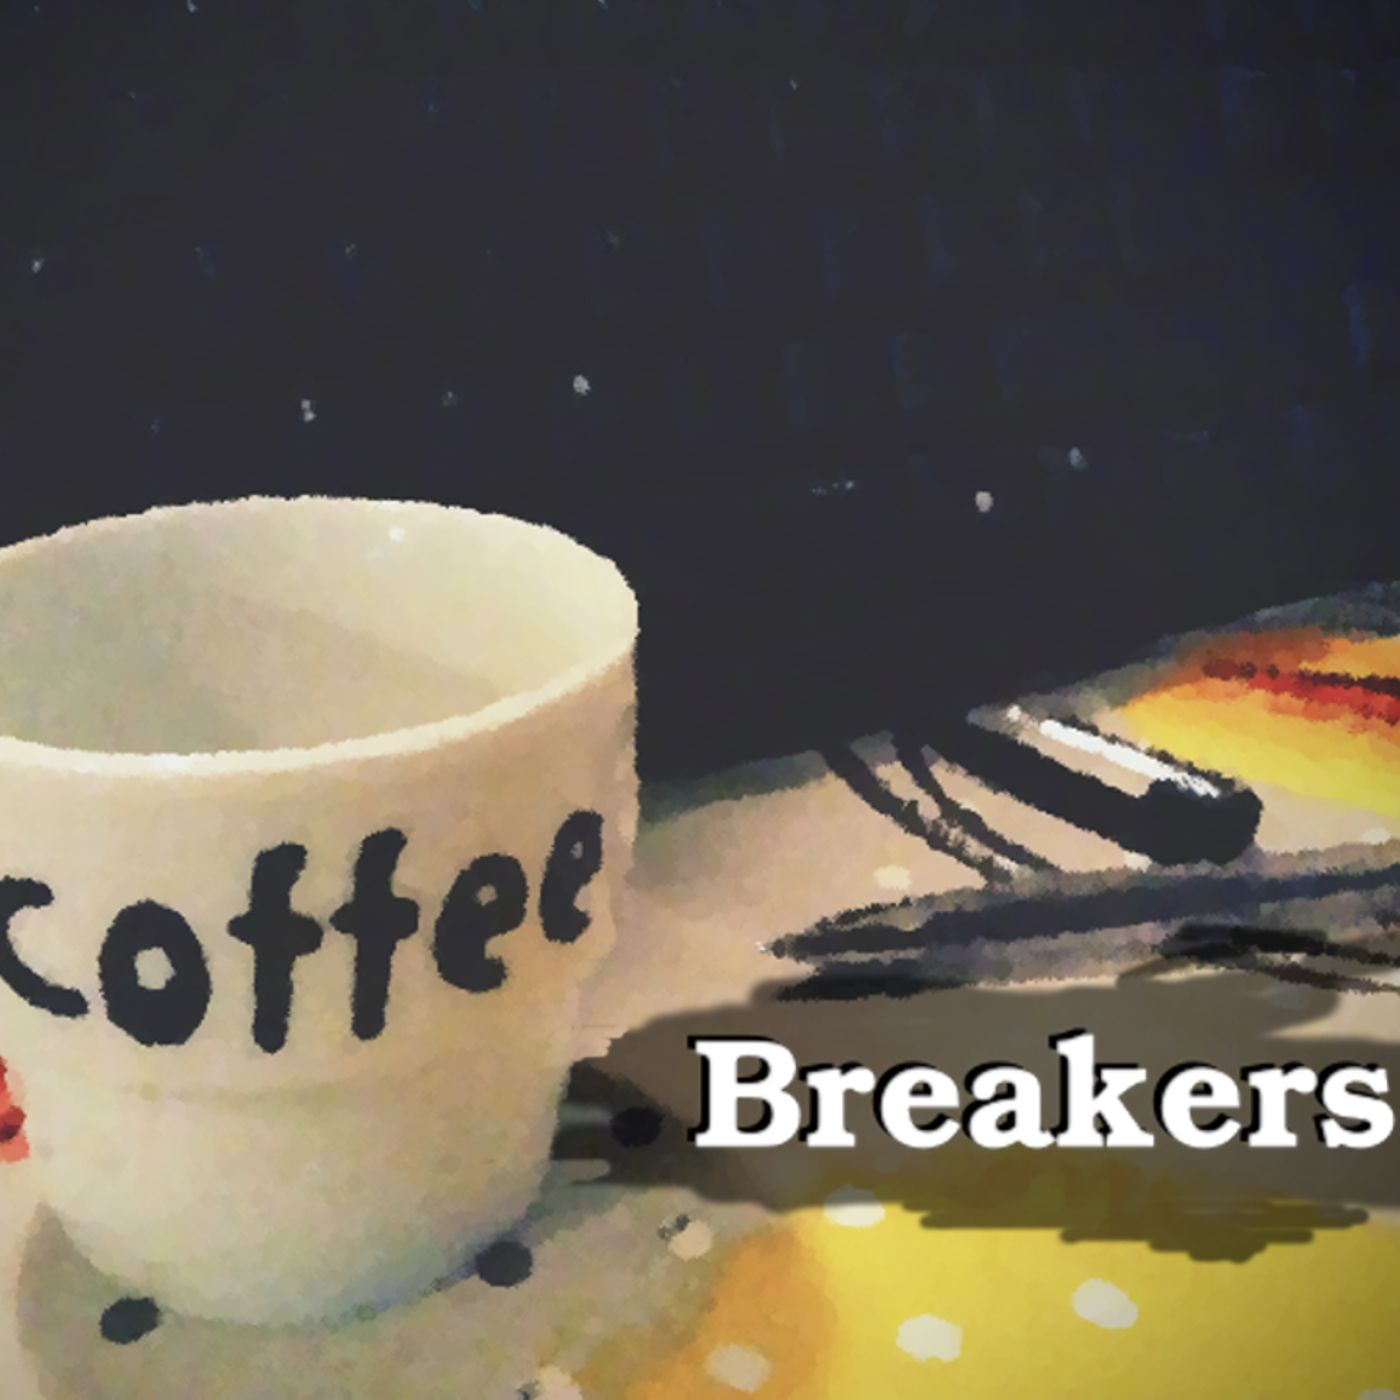 Coffee Breakers